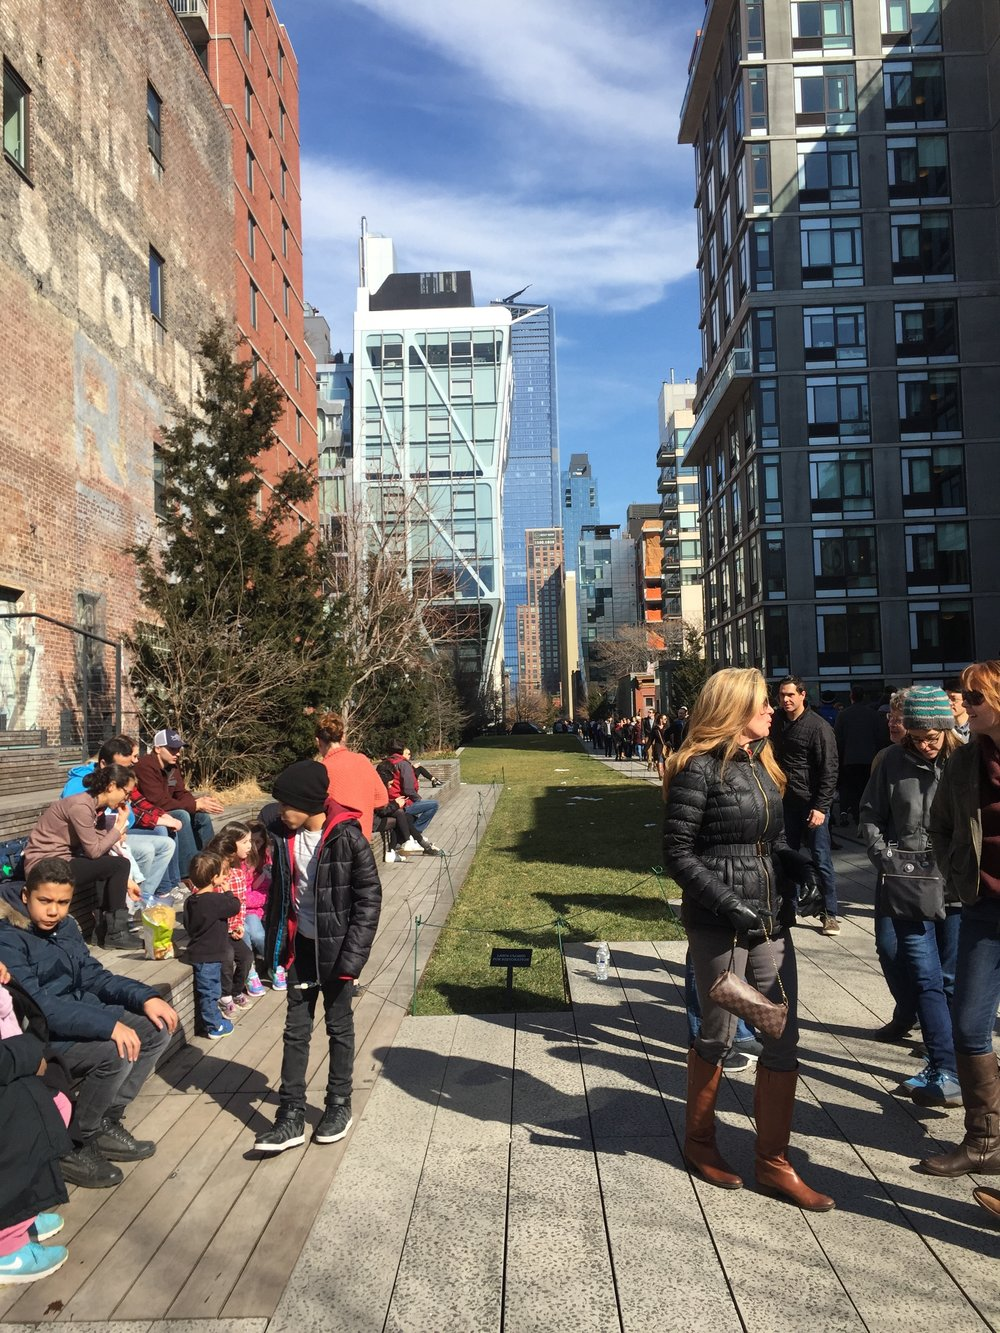 Walking between buildings in High Line Park.